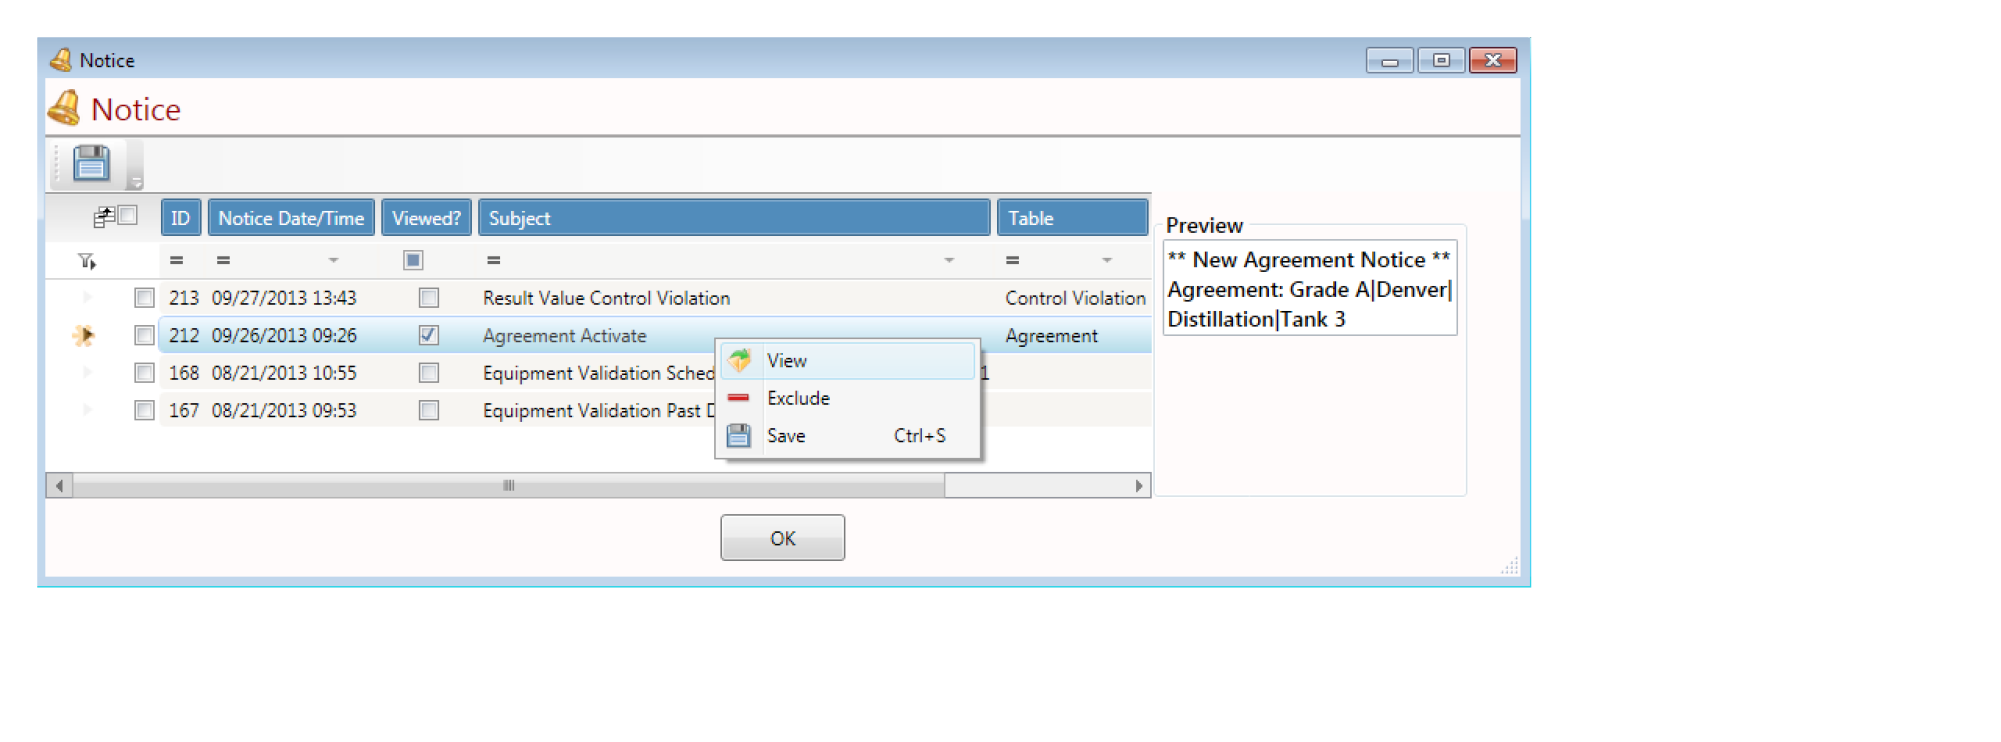 LabSoft LIMS Software Notices Screenshot